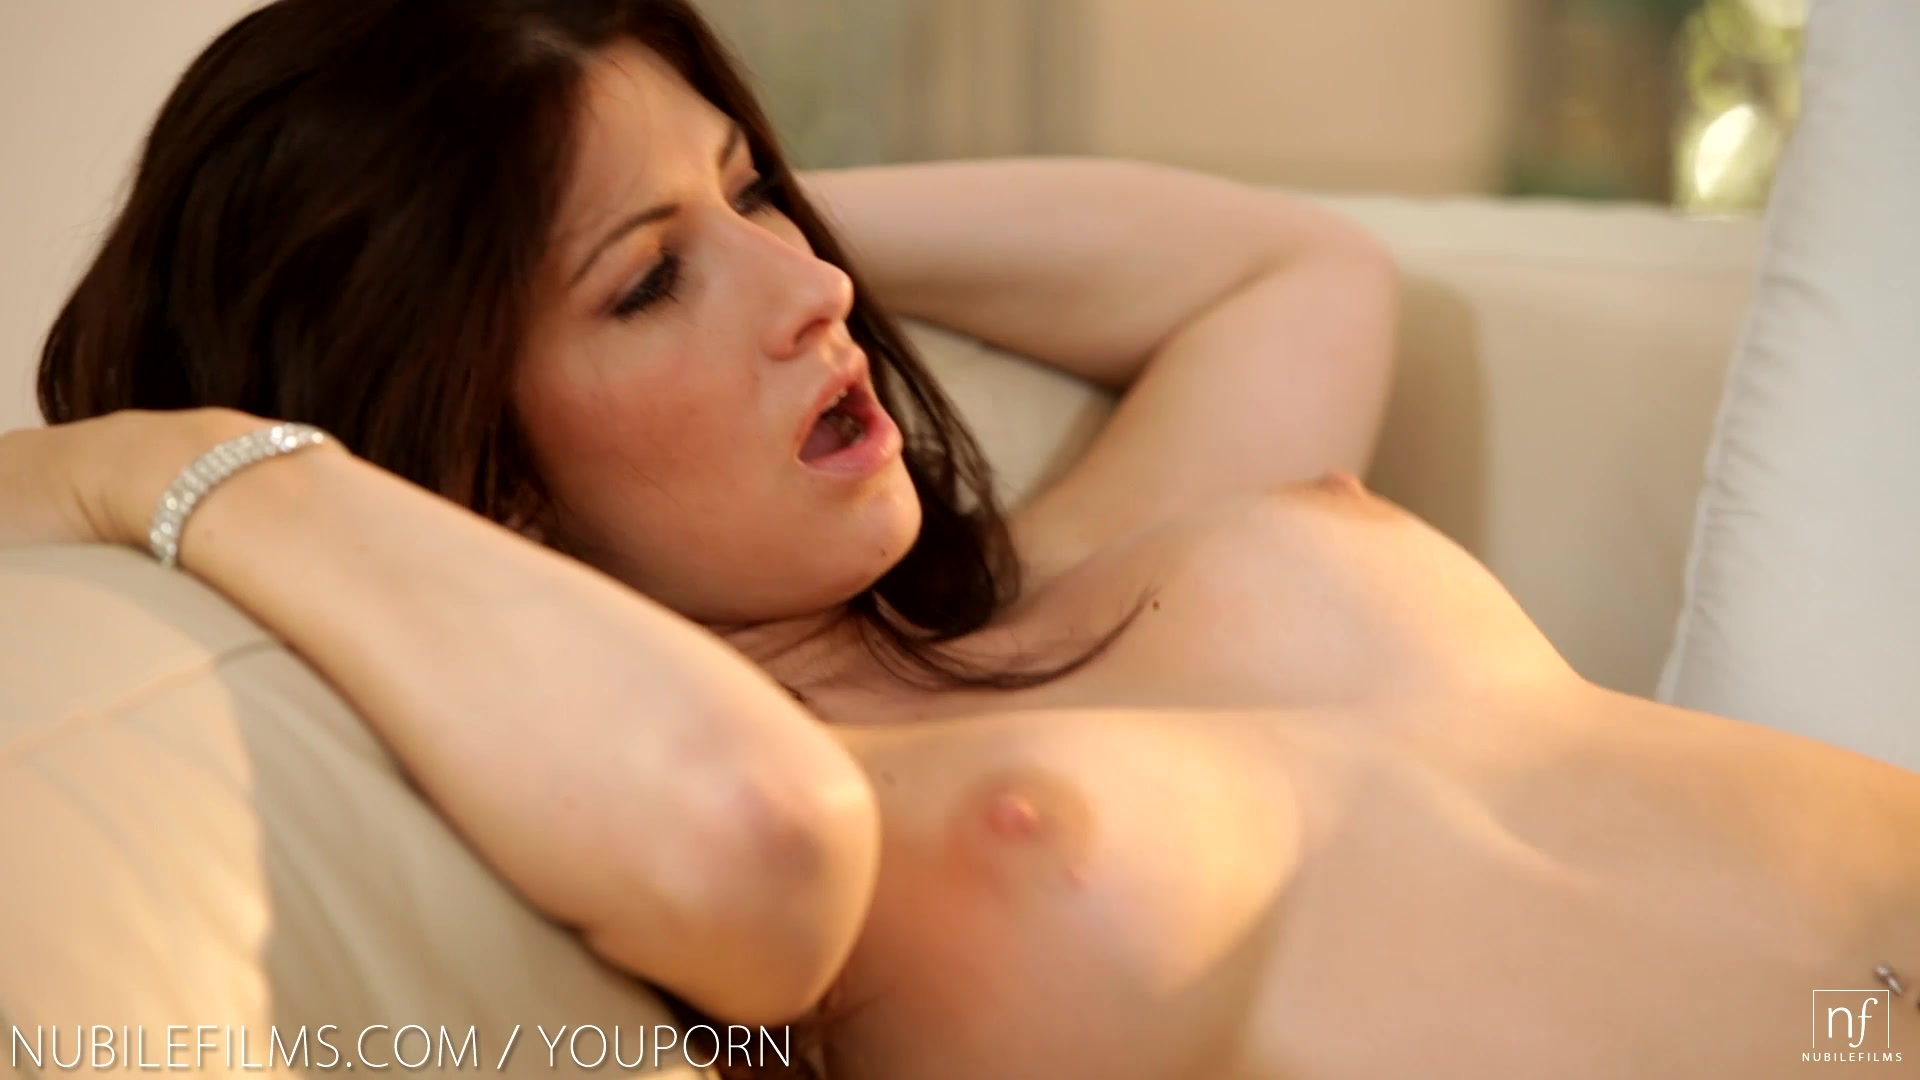 Nubile Films - Busty beauty Karina White gets her perfect tits jizzed